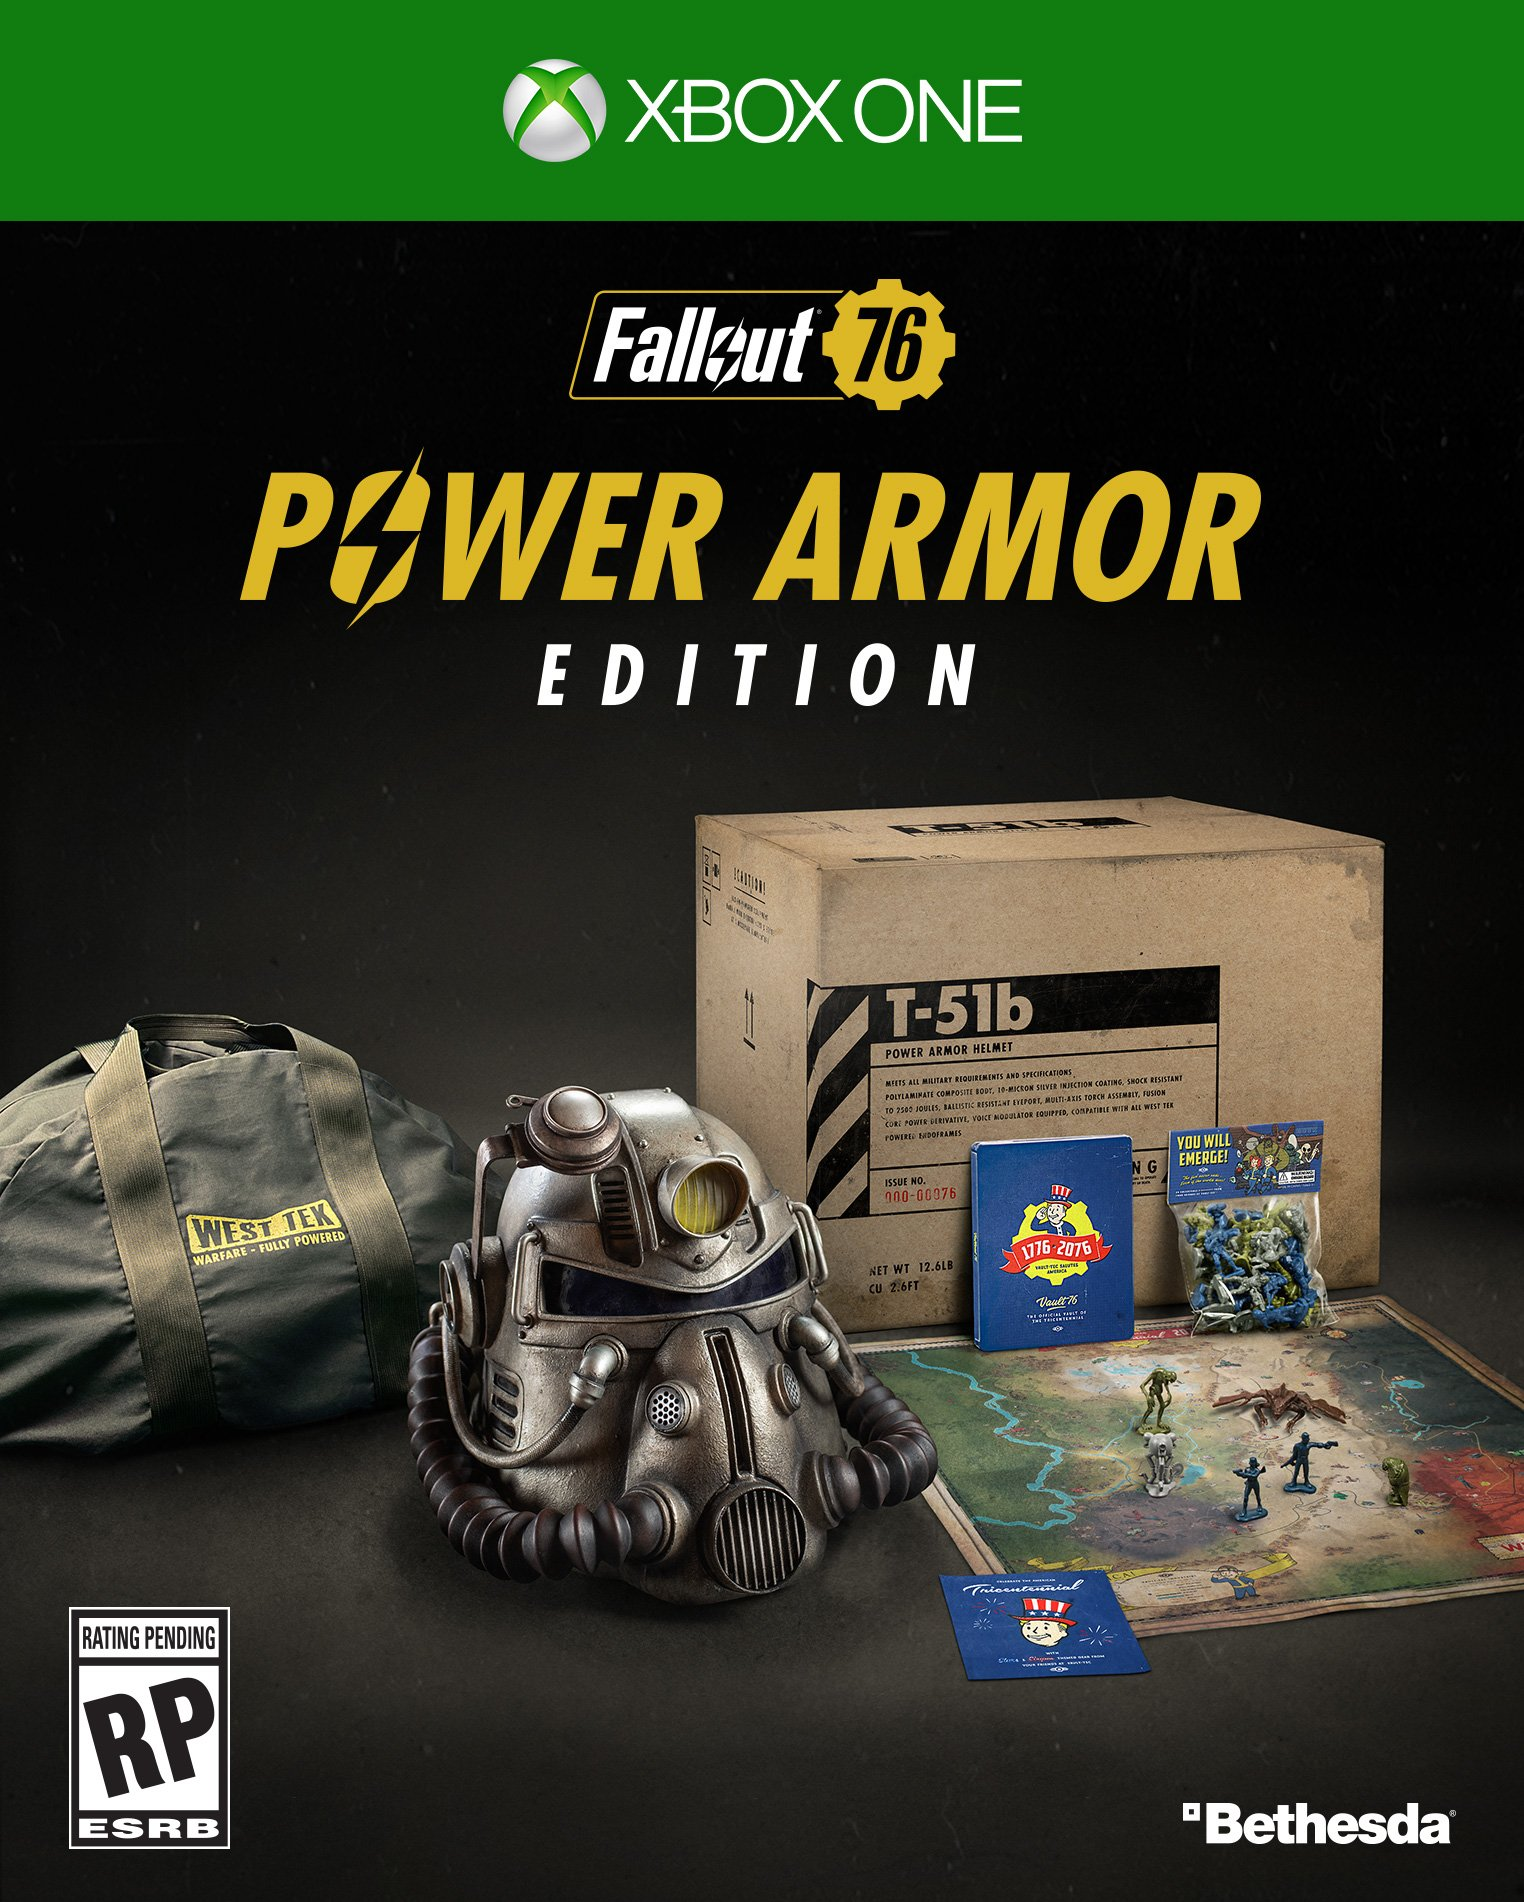 Fallout 76 - Xbox One Power Armor Edition